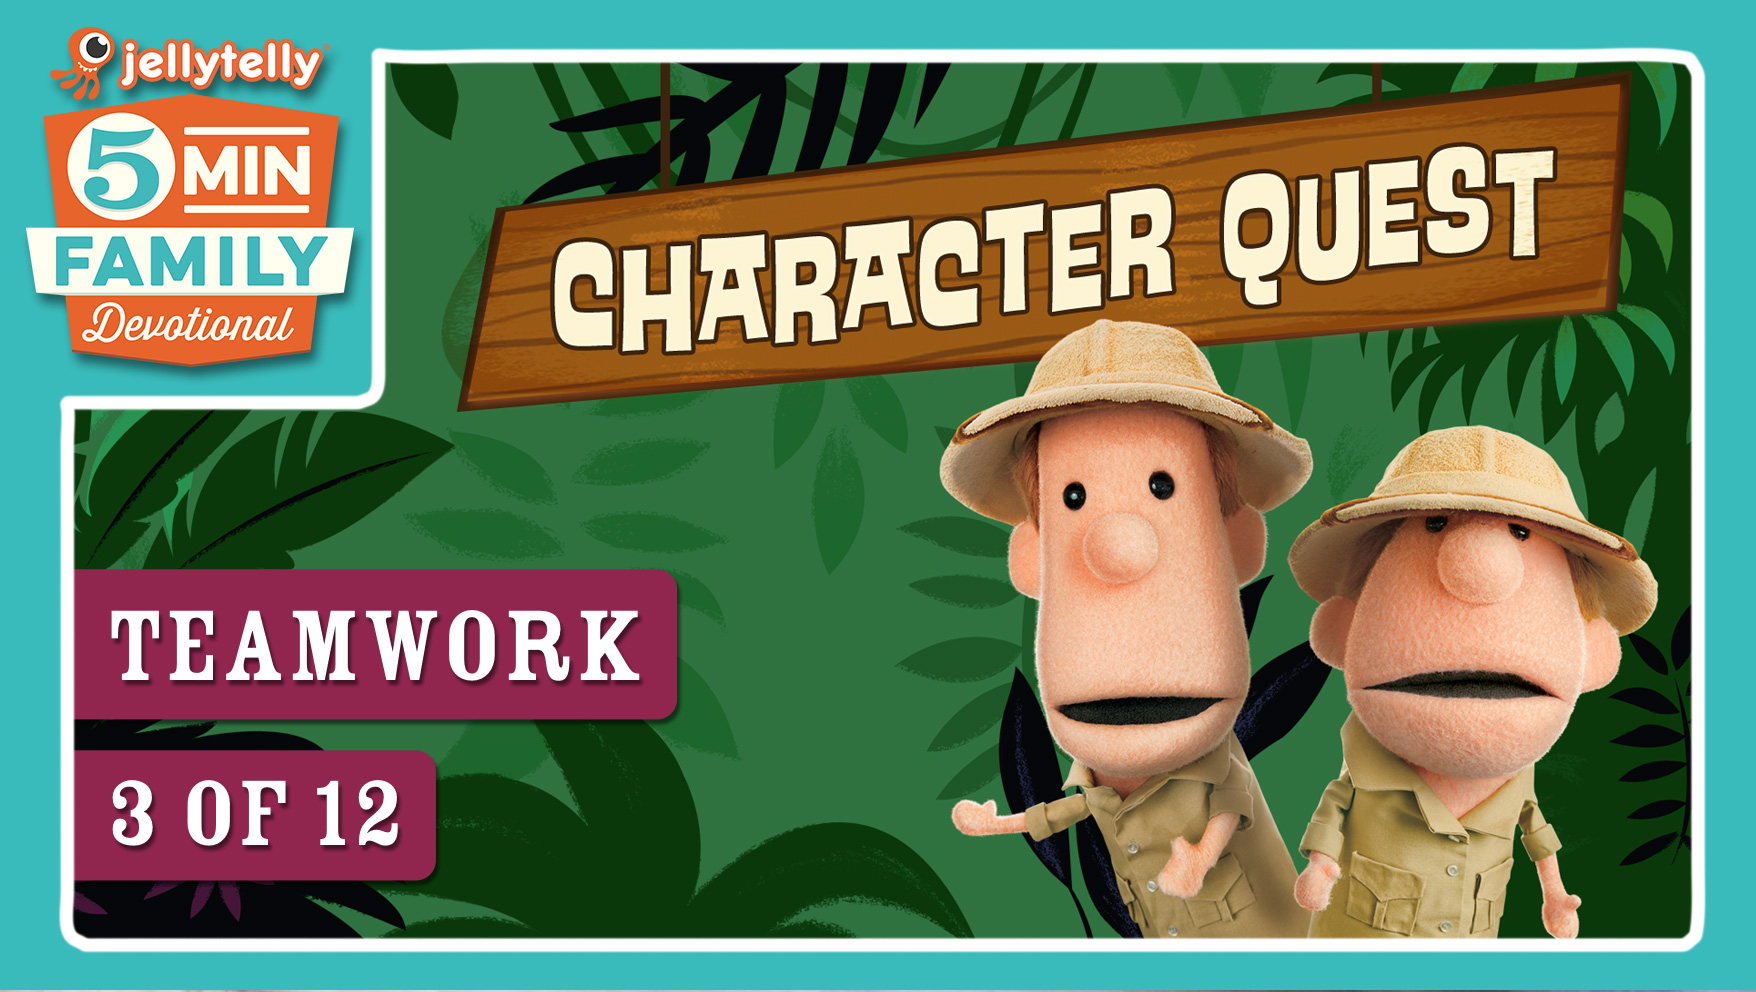 Teamwork - Character Quest 5 Minute Family Devotional